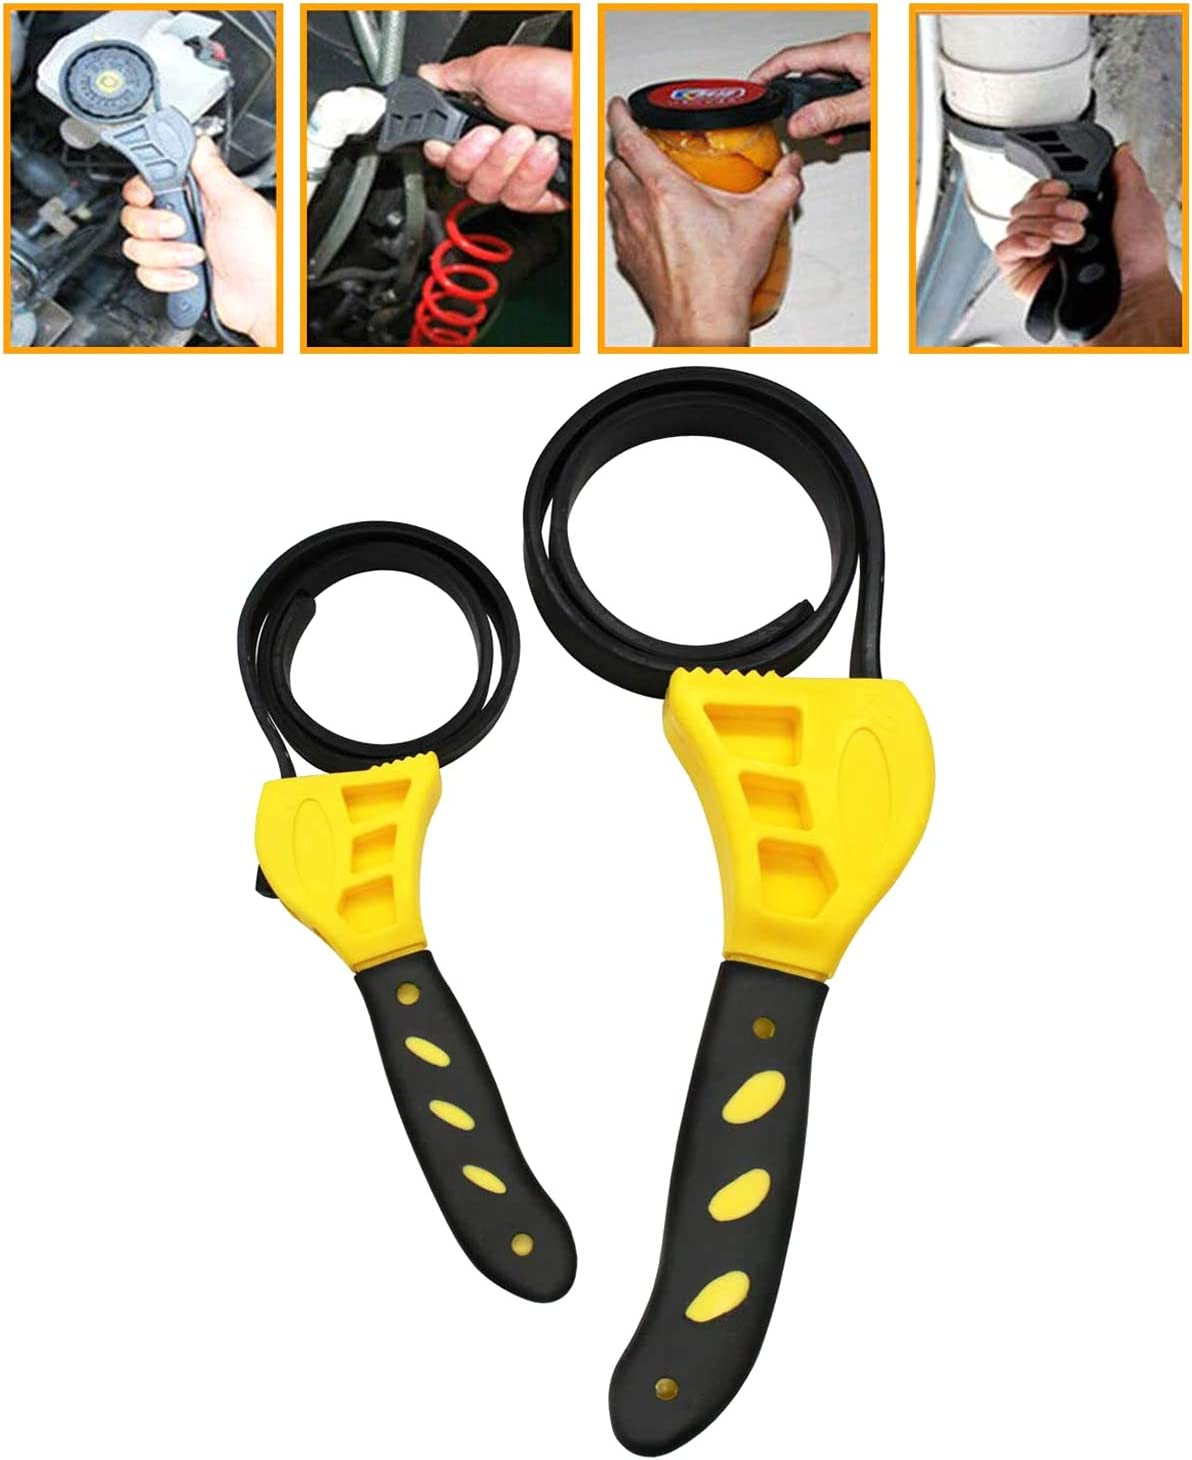 Filter Wrench HORUSDY 2-Piece Adjustable Strap Wrench 2-Piece Plumbing Wrench Grip Wrench Plumbers Srench Oil Wrench